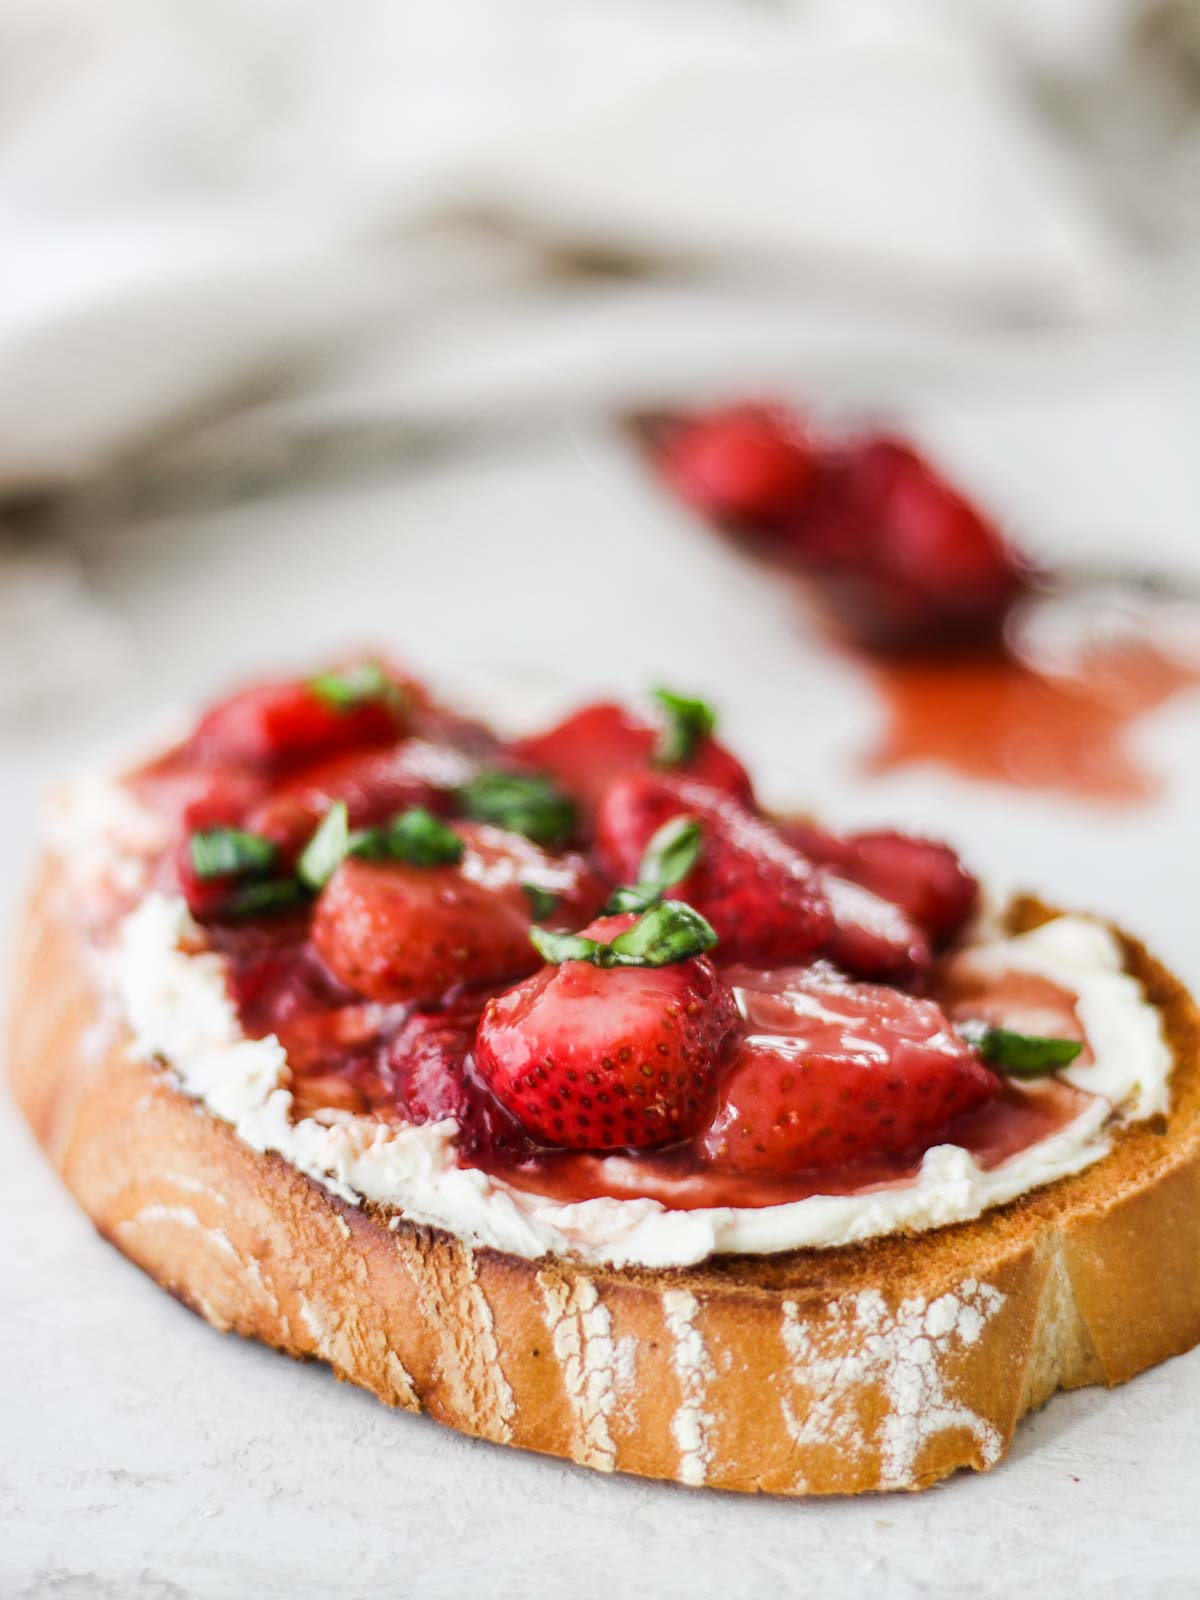 Balsamic Macerated Strawberries on toast